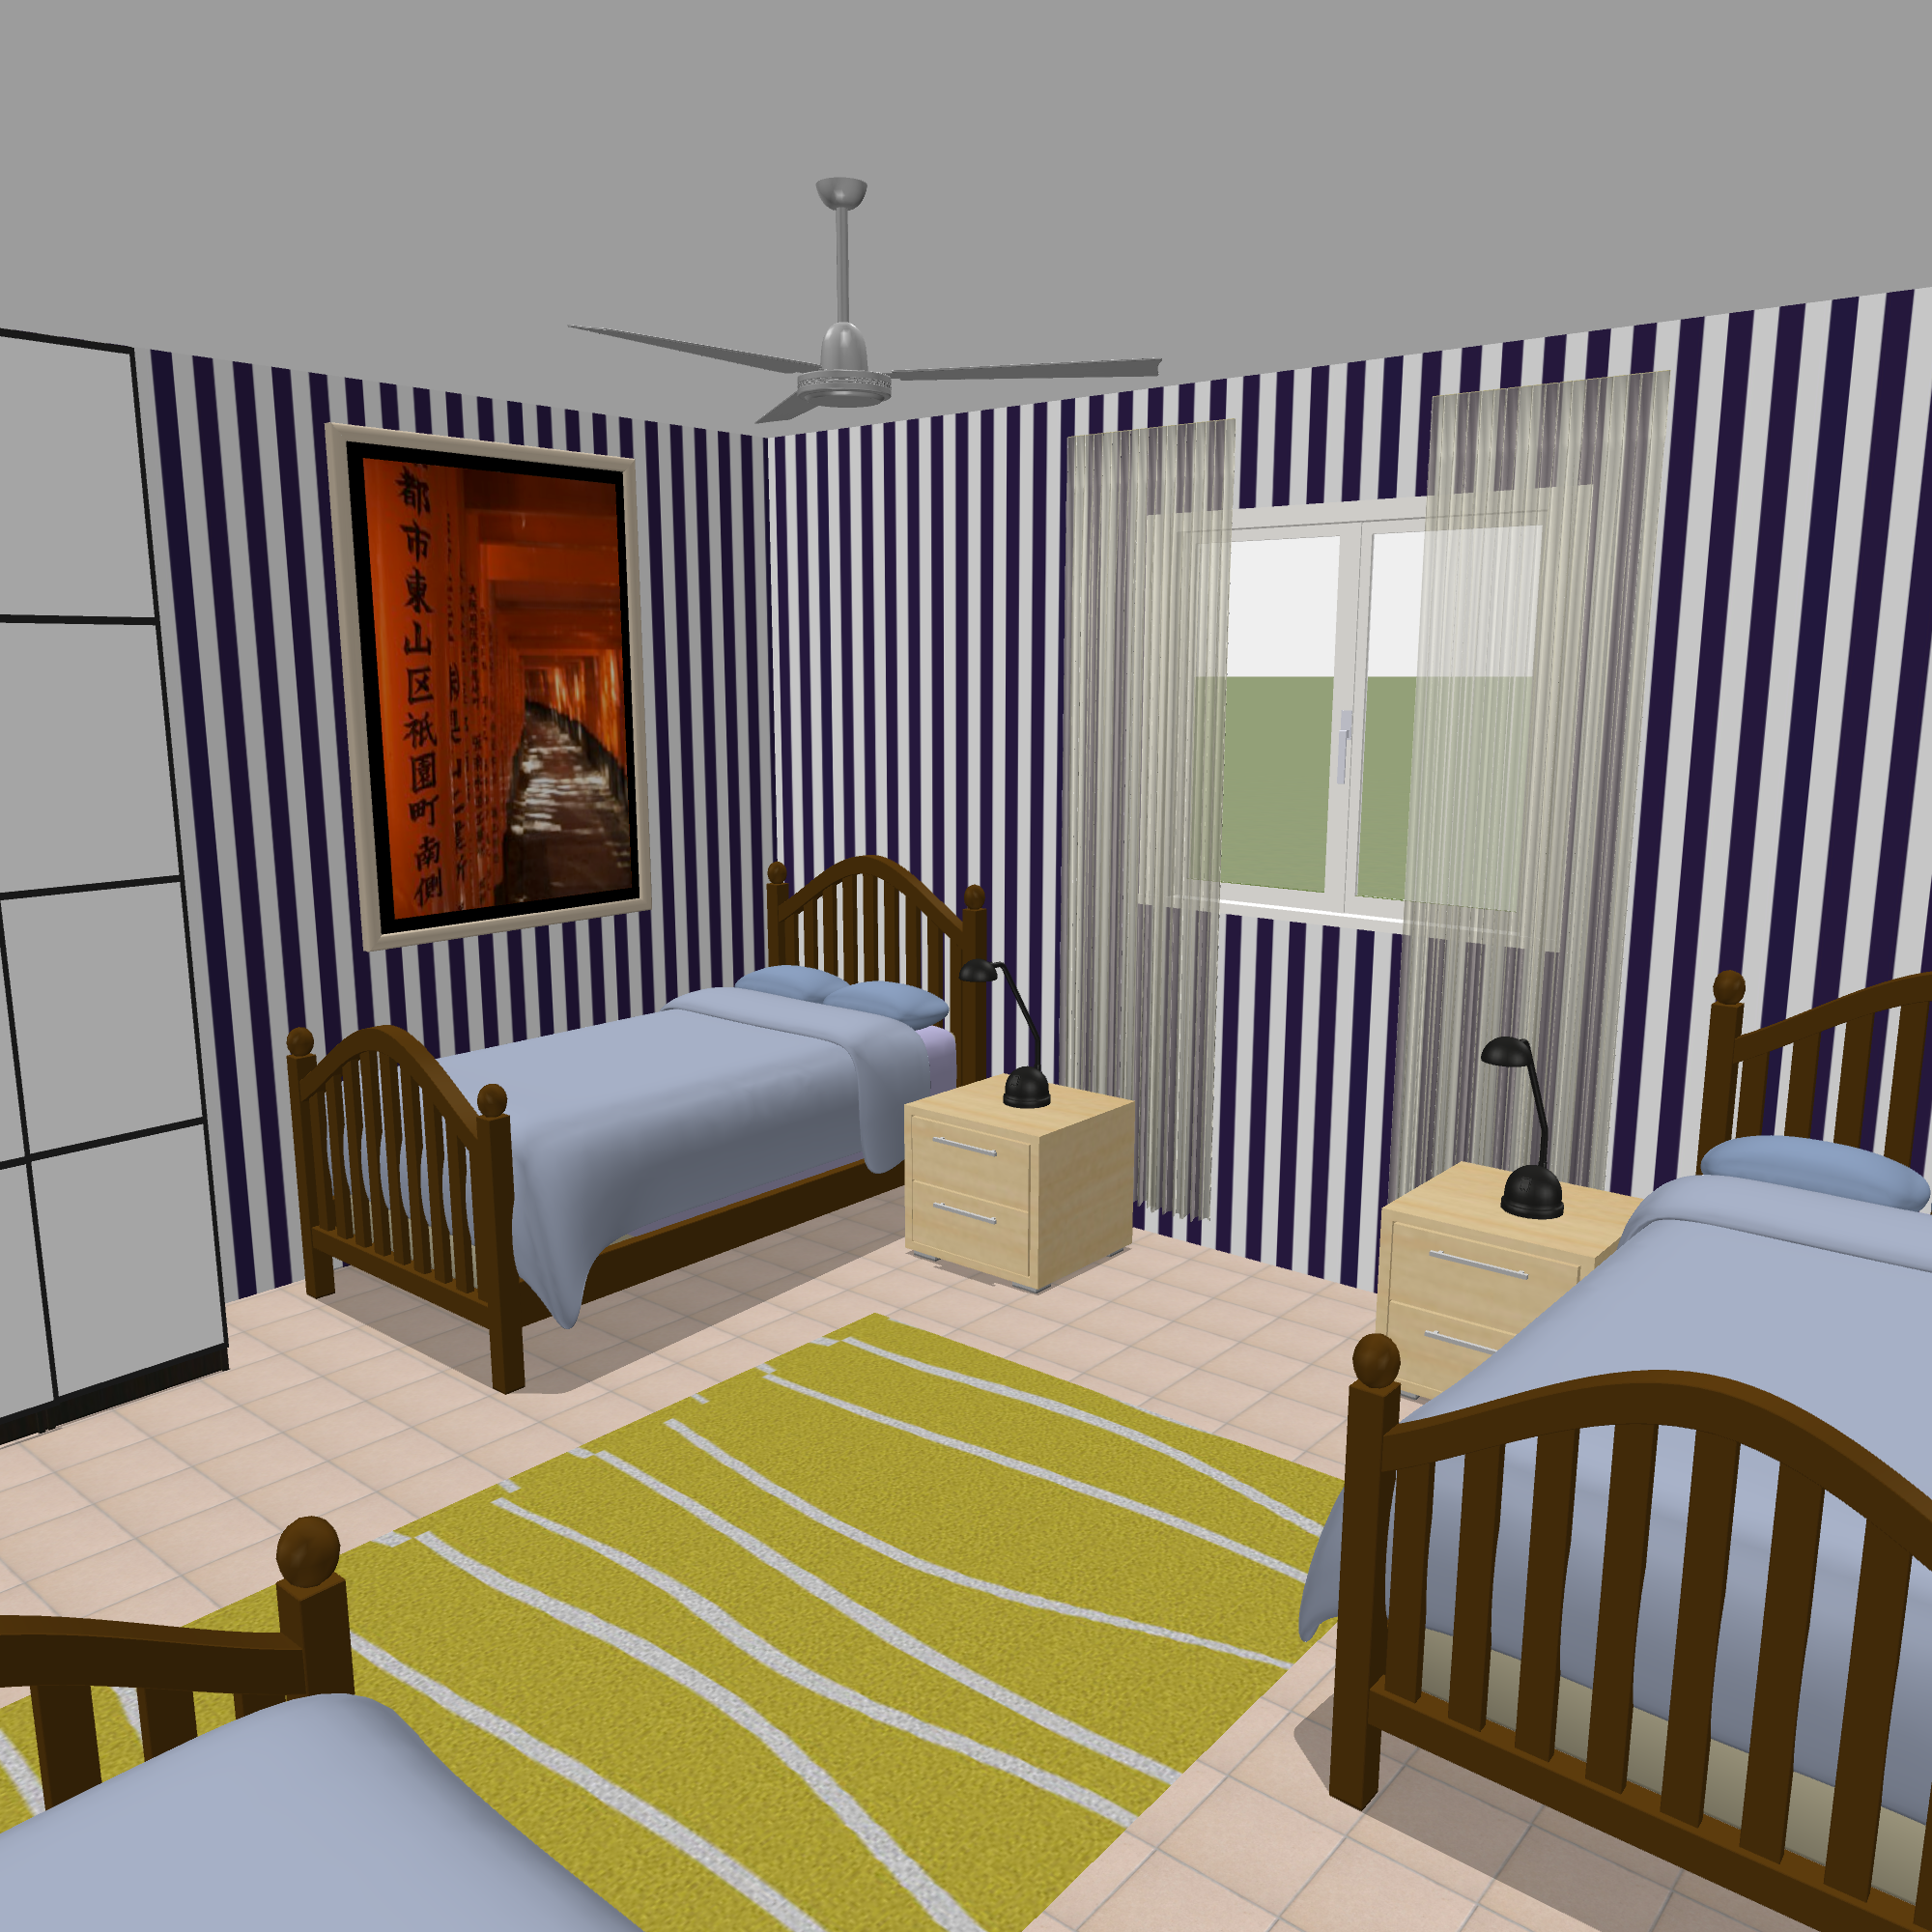 110sqm_bedroom2.png